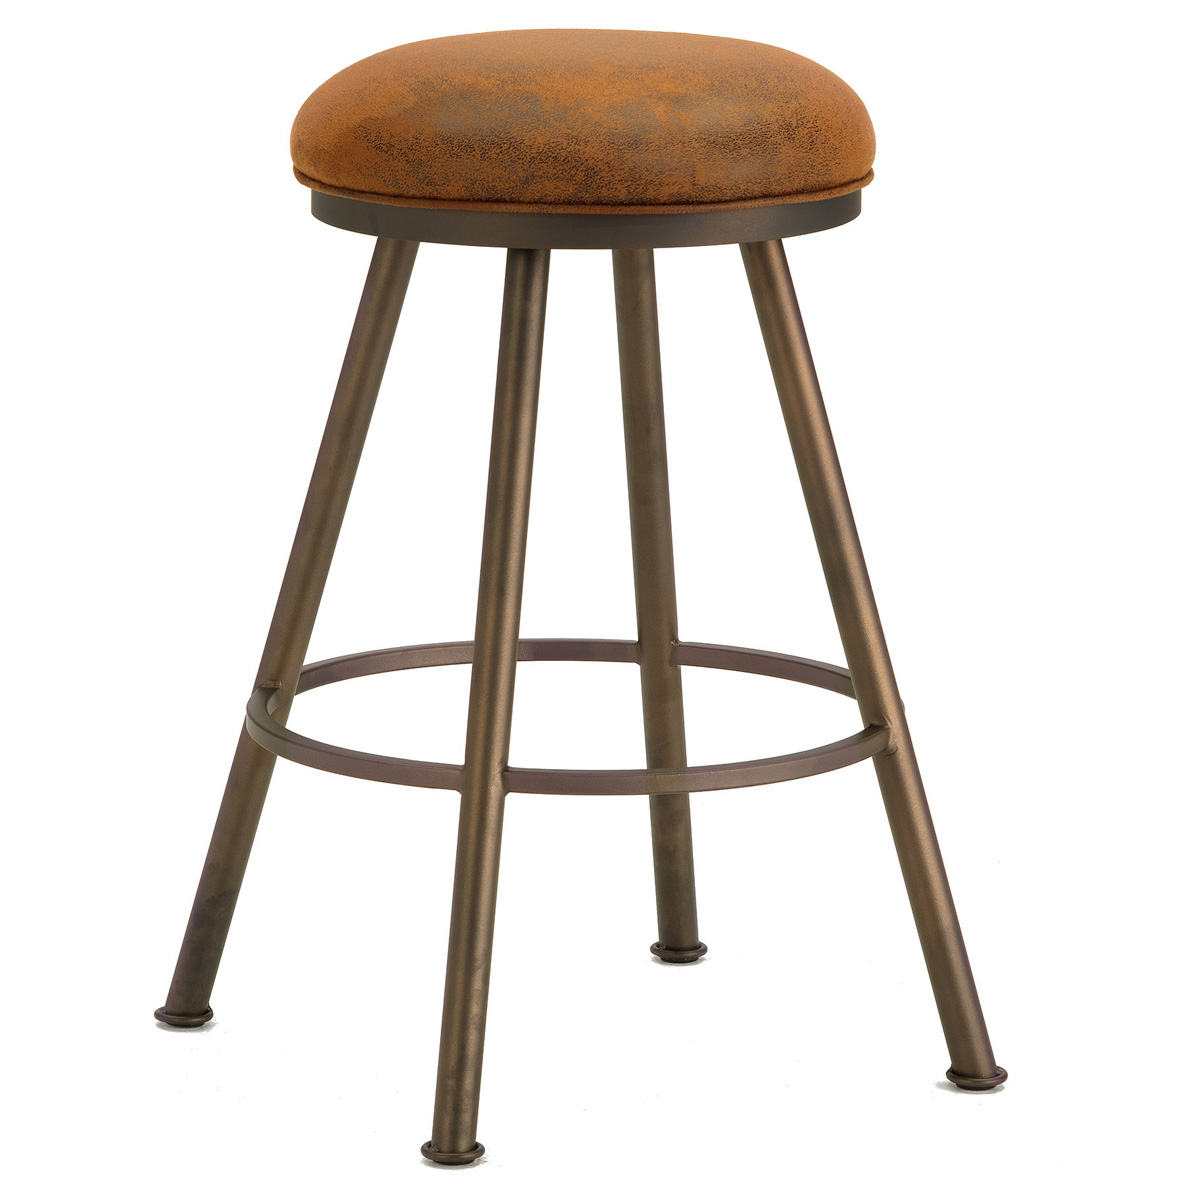 "Alexander 30"" Backless Swivel Bar Stool - Round Seat, Microfiber"